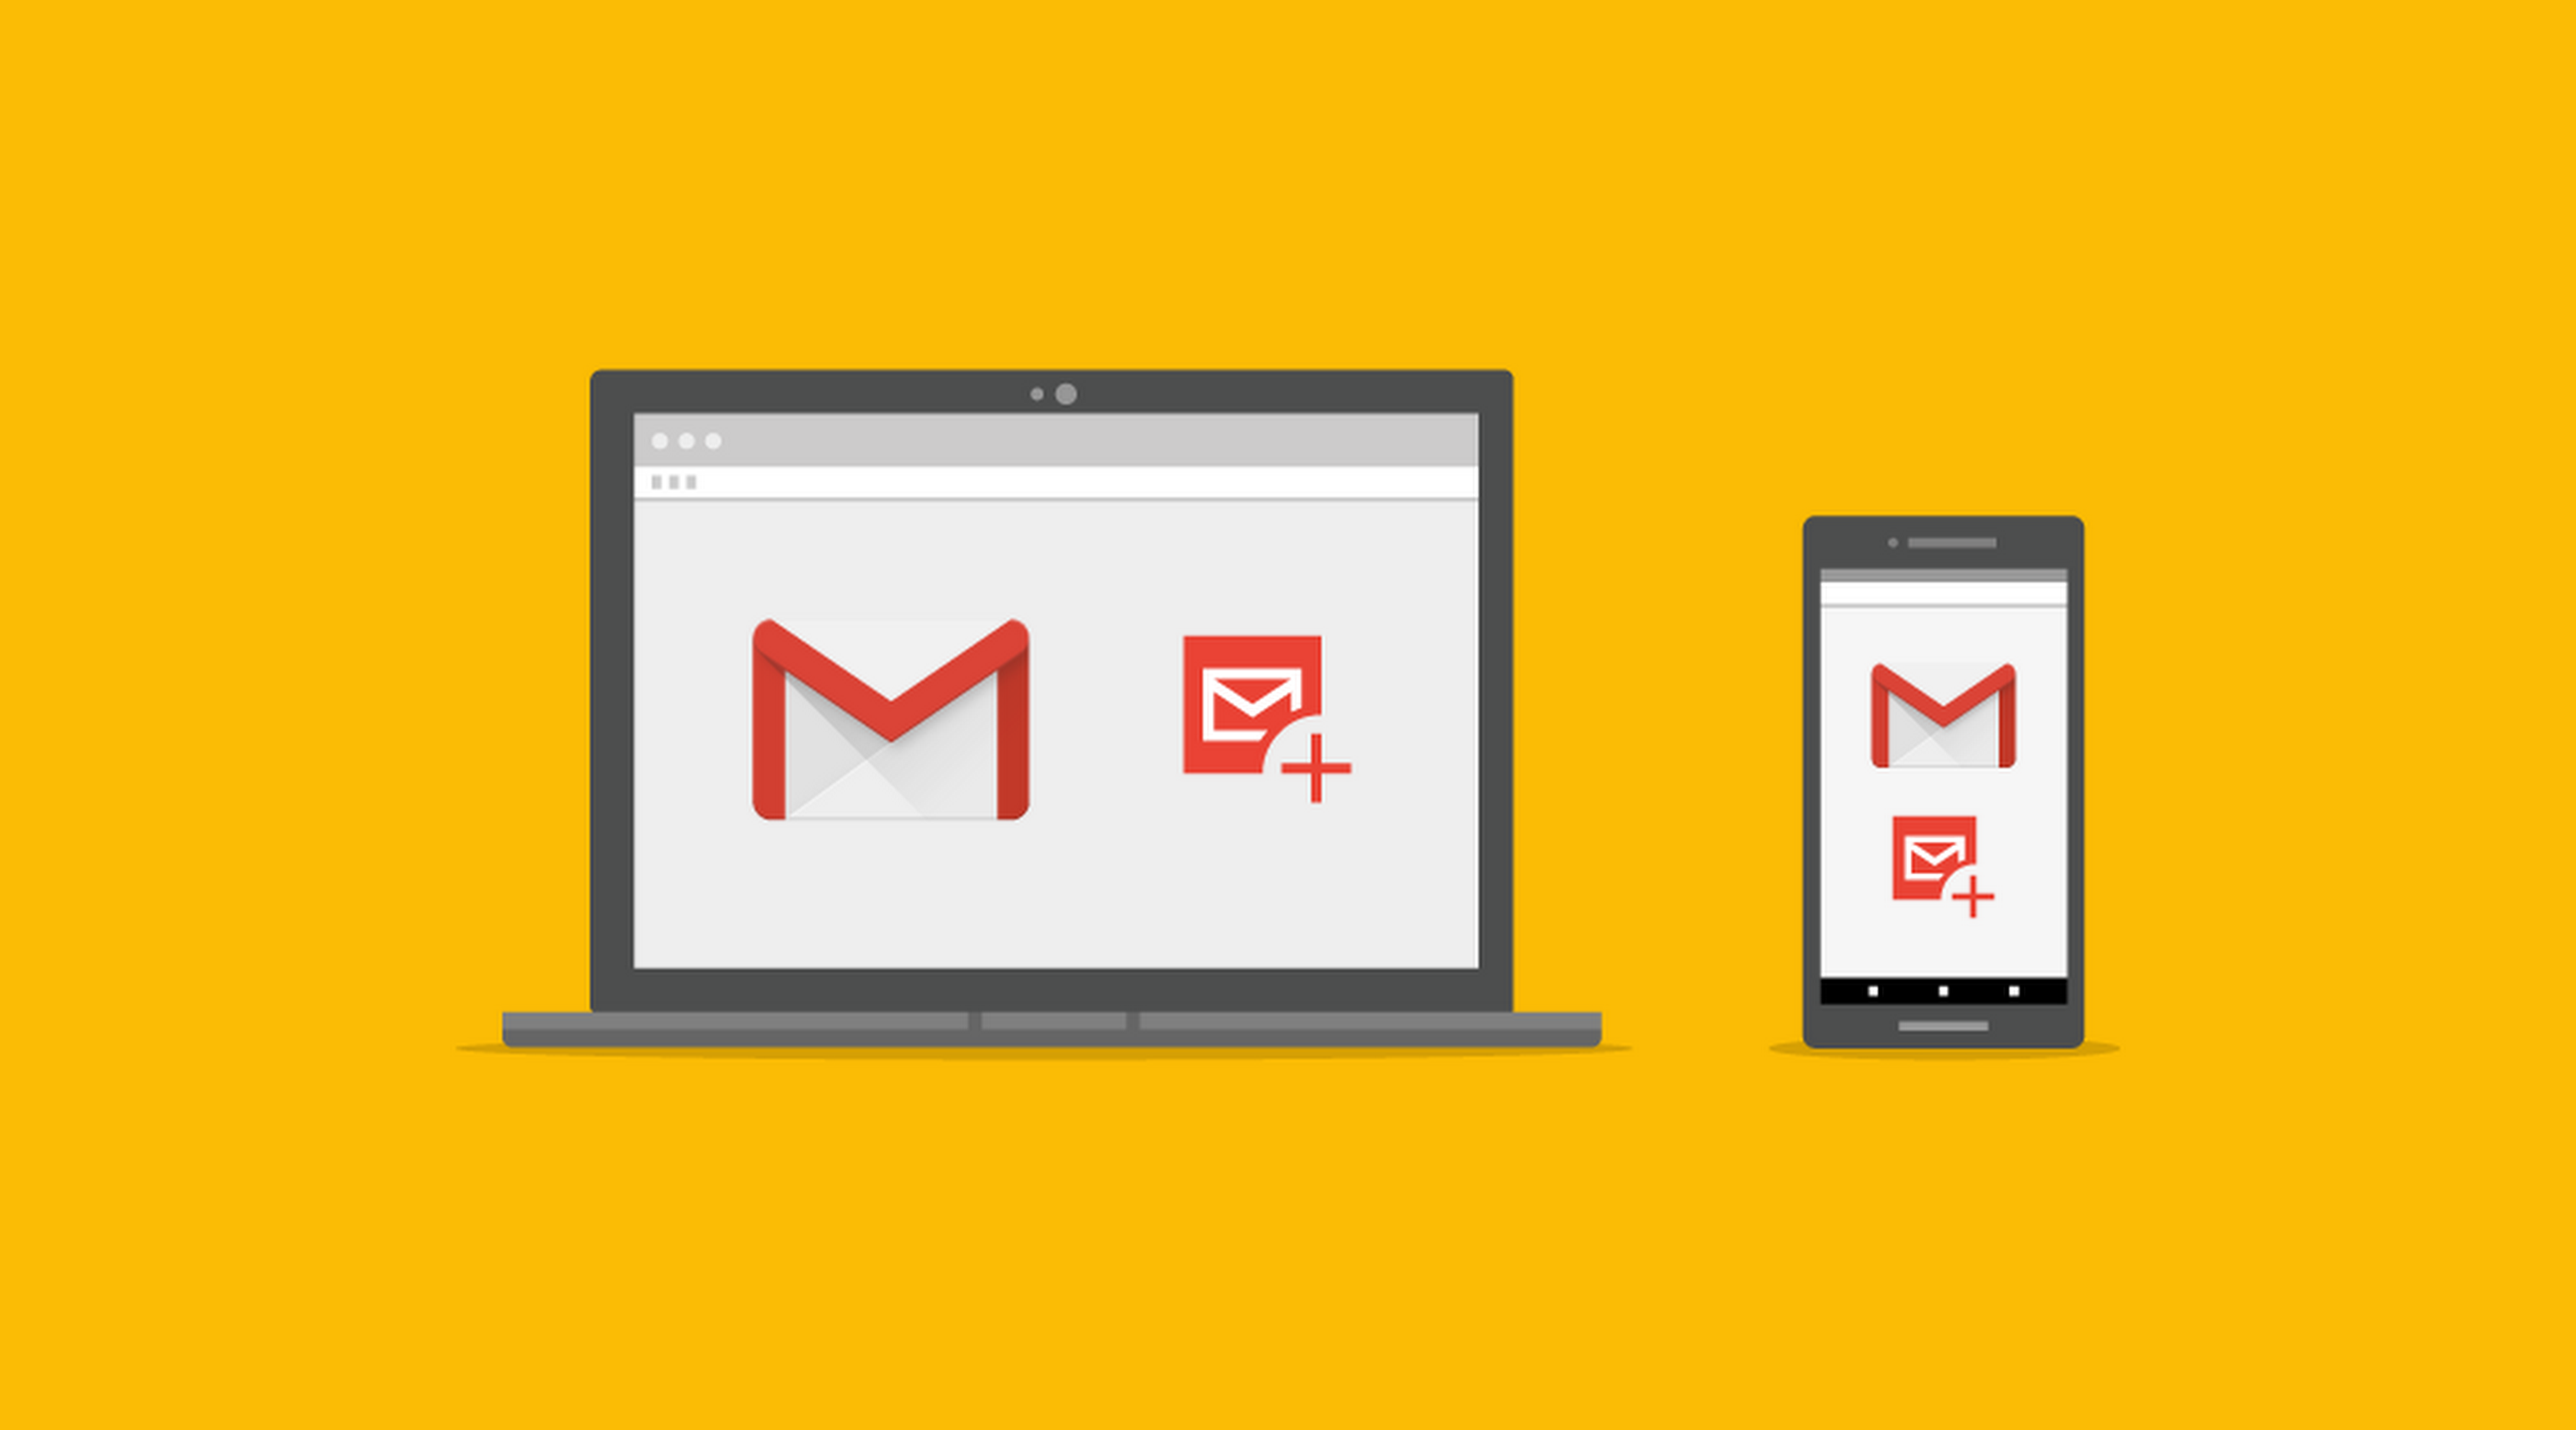 Stay composed here's a quick rundown of the new Gmail